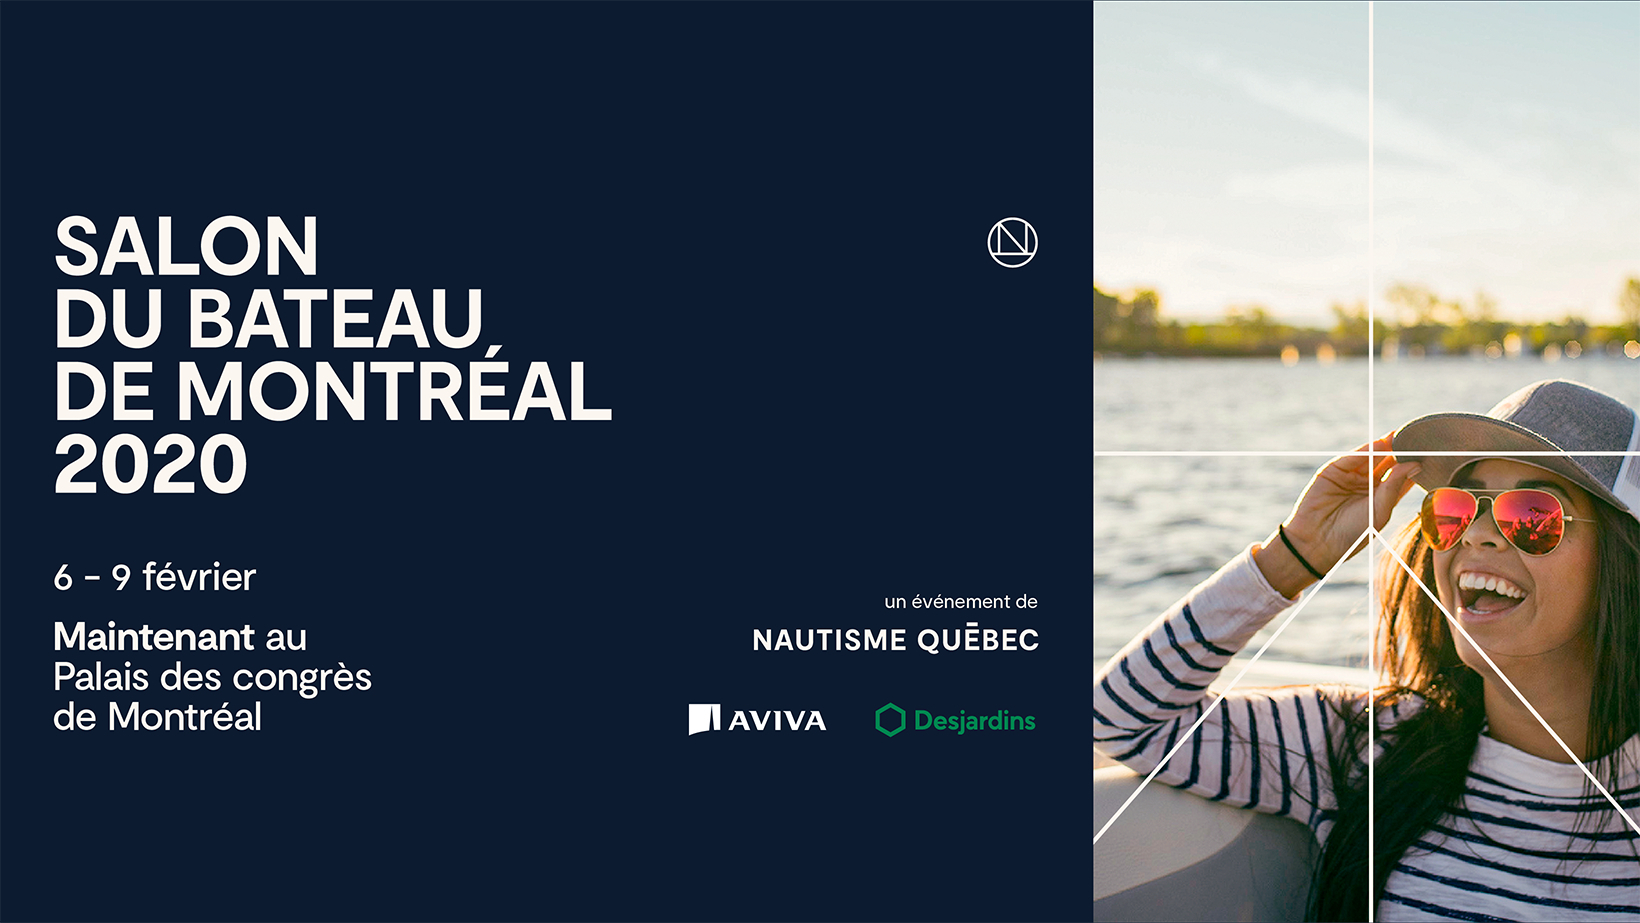 Boisvert Marine à Sorel-Tracy: It is with great pride and dedication that Mr. Gaétan Boisvert and his team will be present for a 22nd consecutive year at the MONTREAL BOAT SHOW AND  WATER SPORTS 2020.